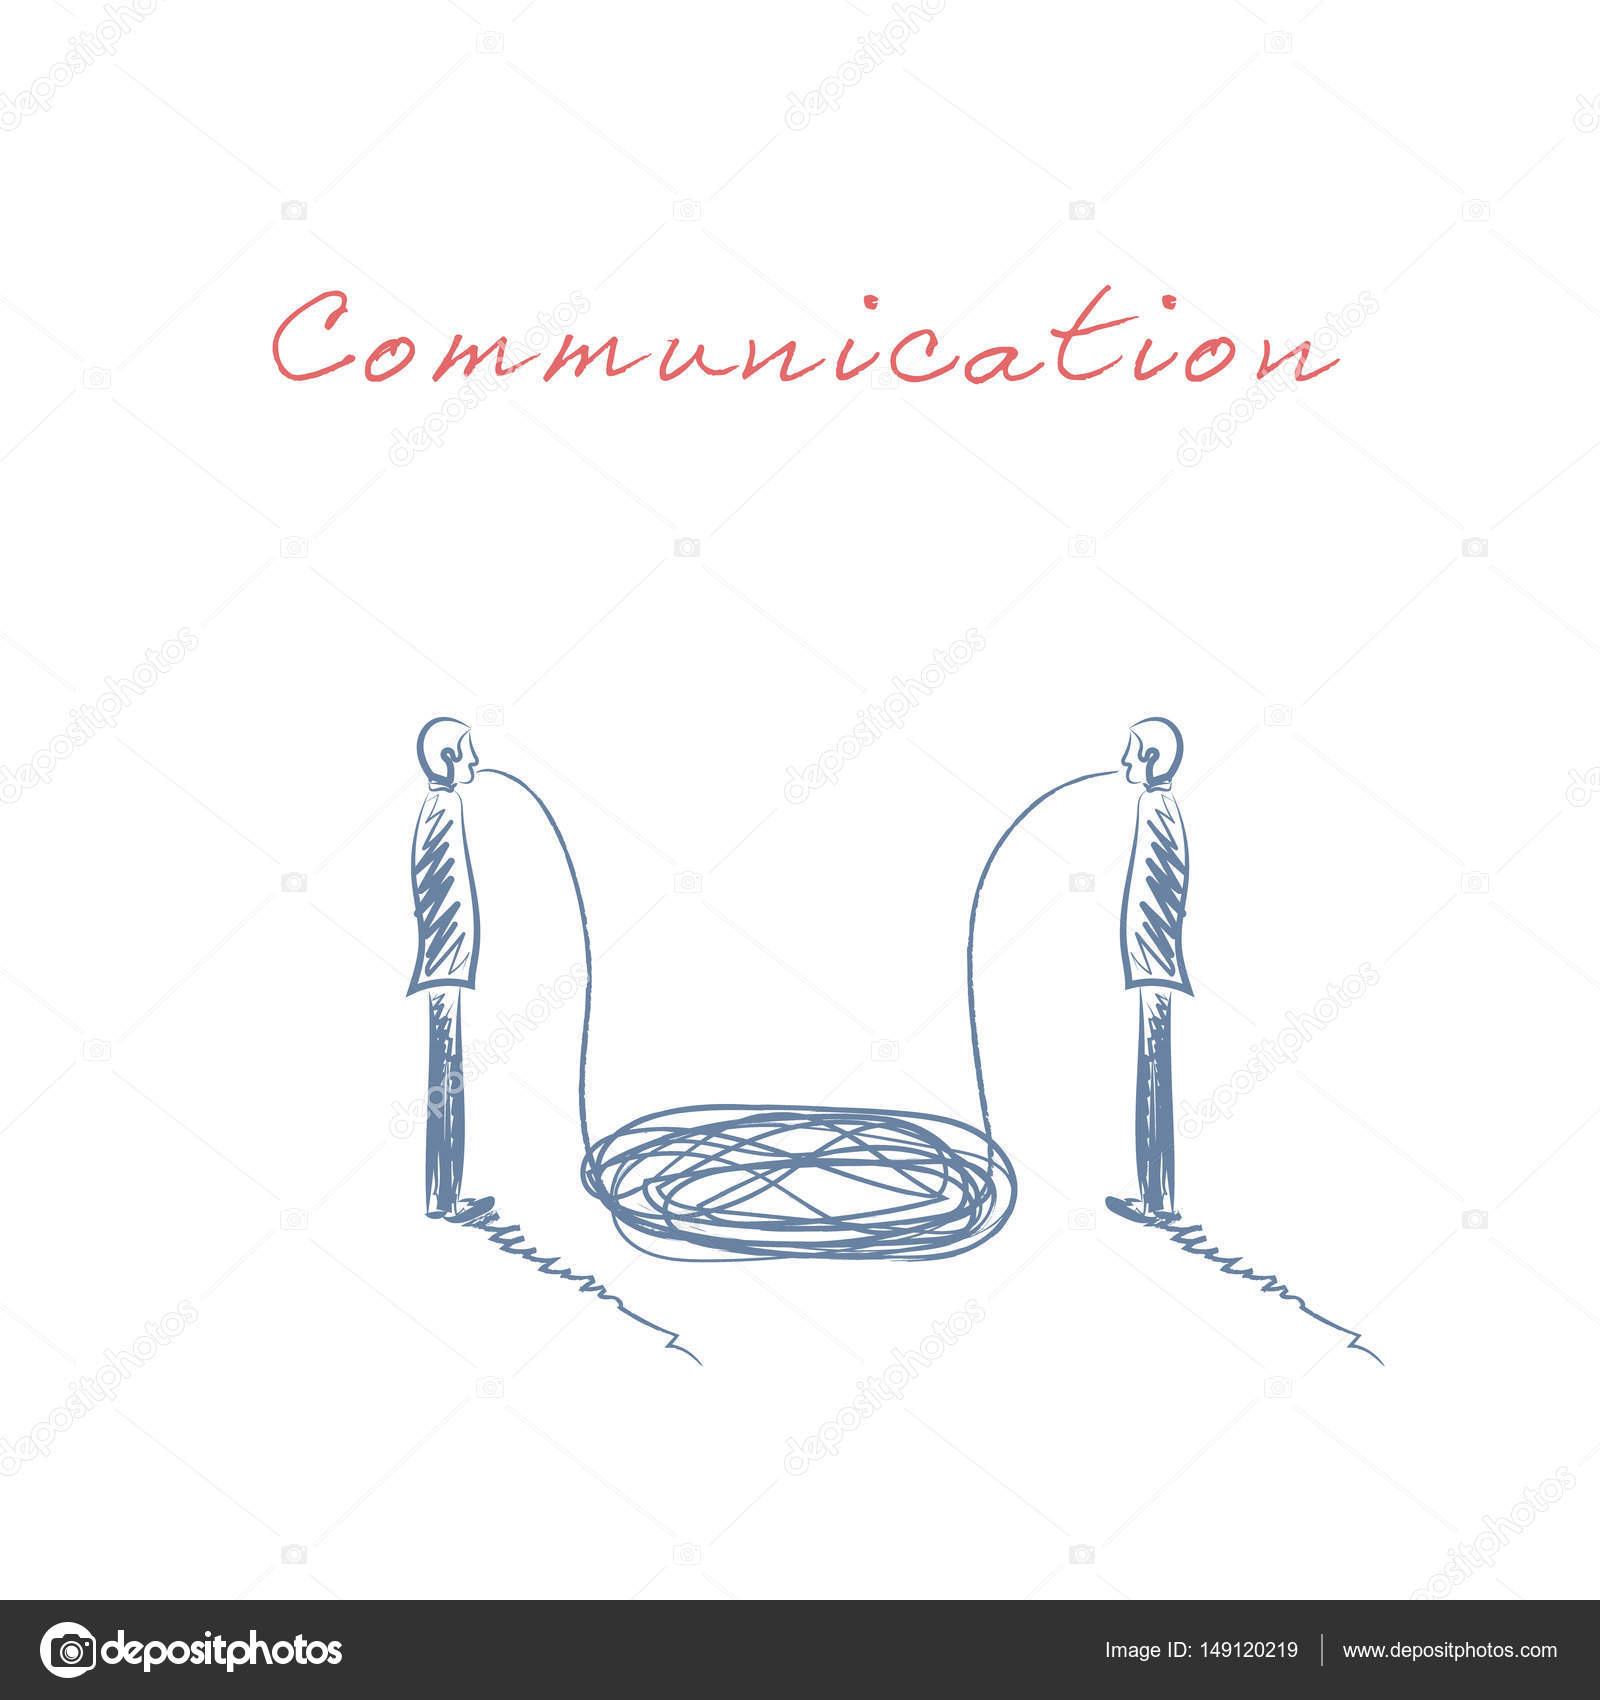 Drawn symbol communication Drawn business Business with having